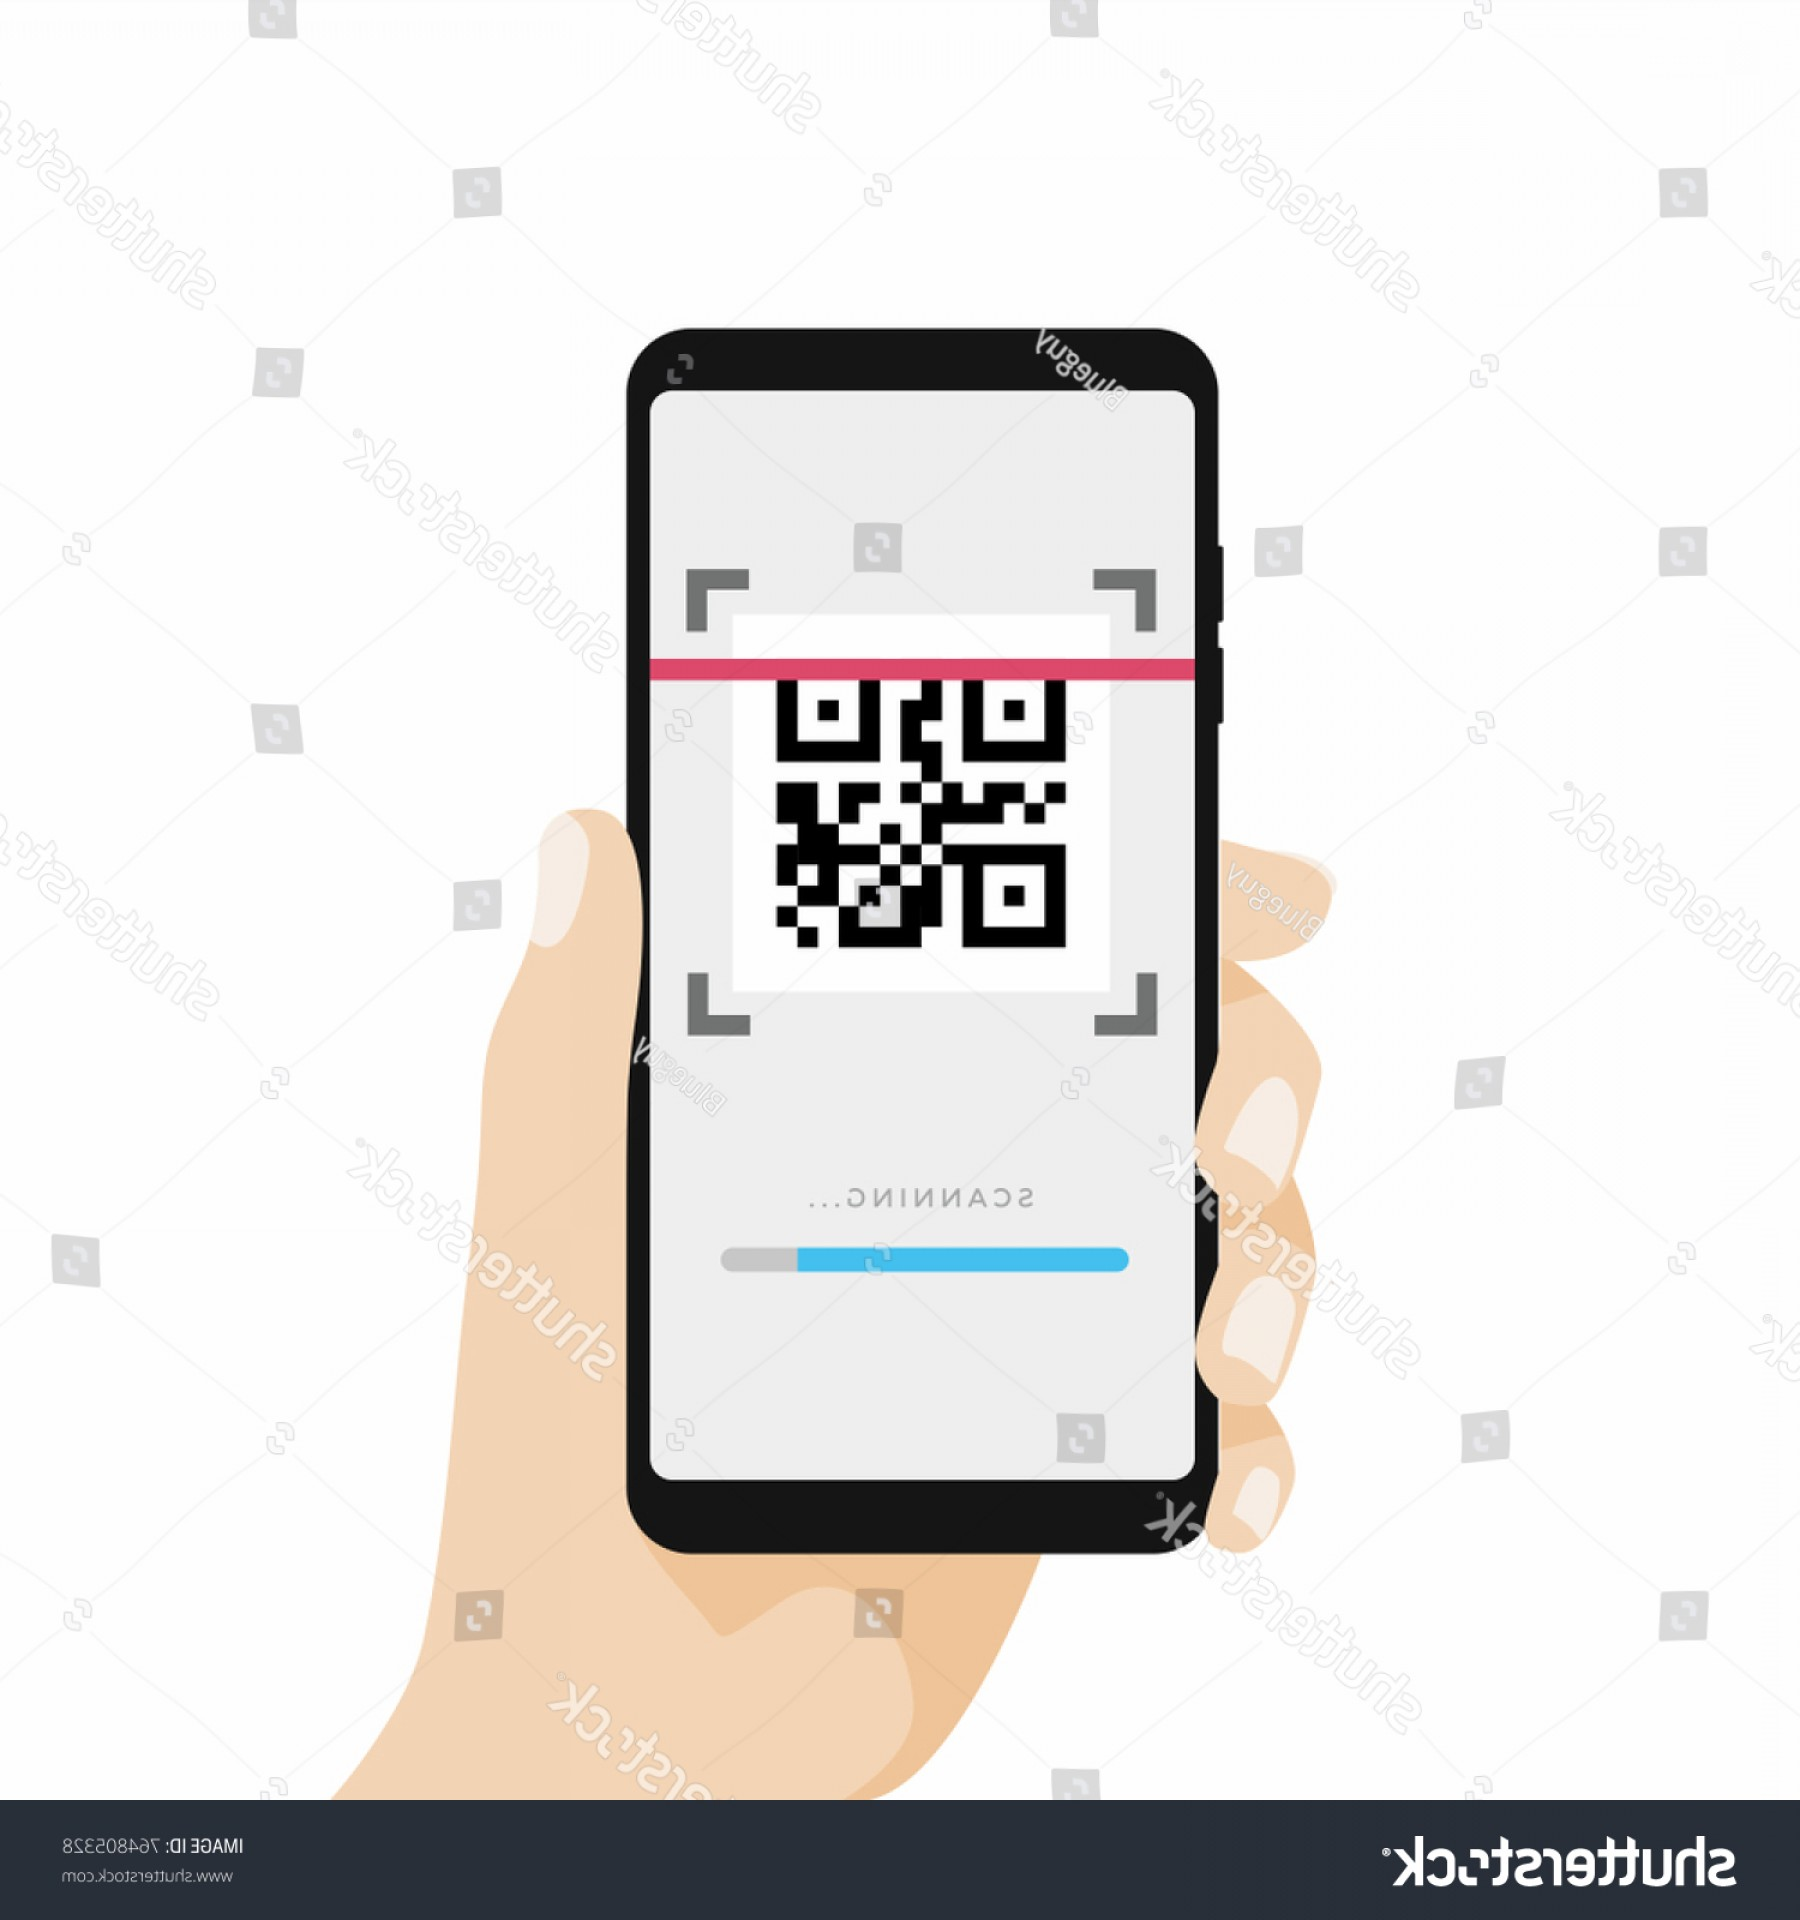 QR Mobile Phone Vector: Scan Qr Code Mobile Phone Scanning